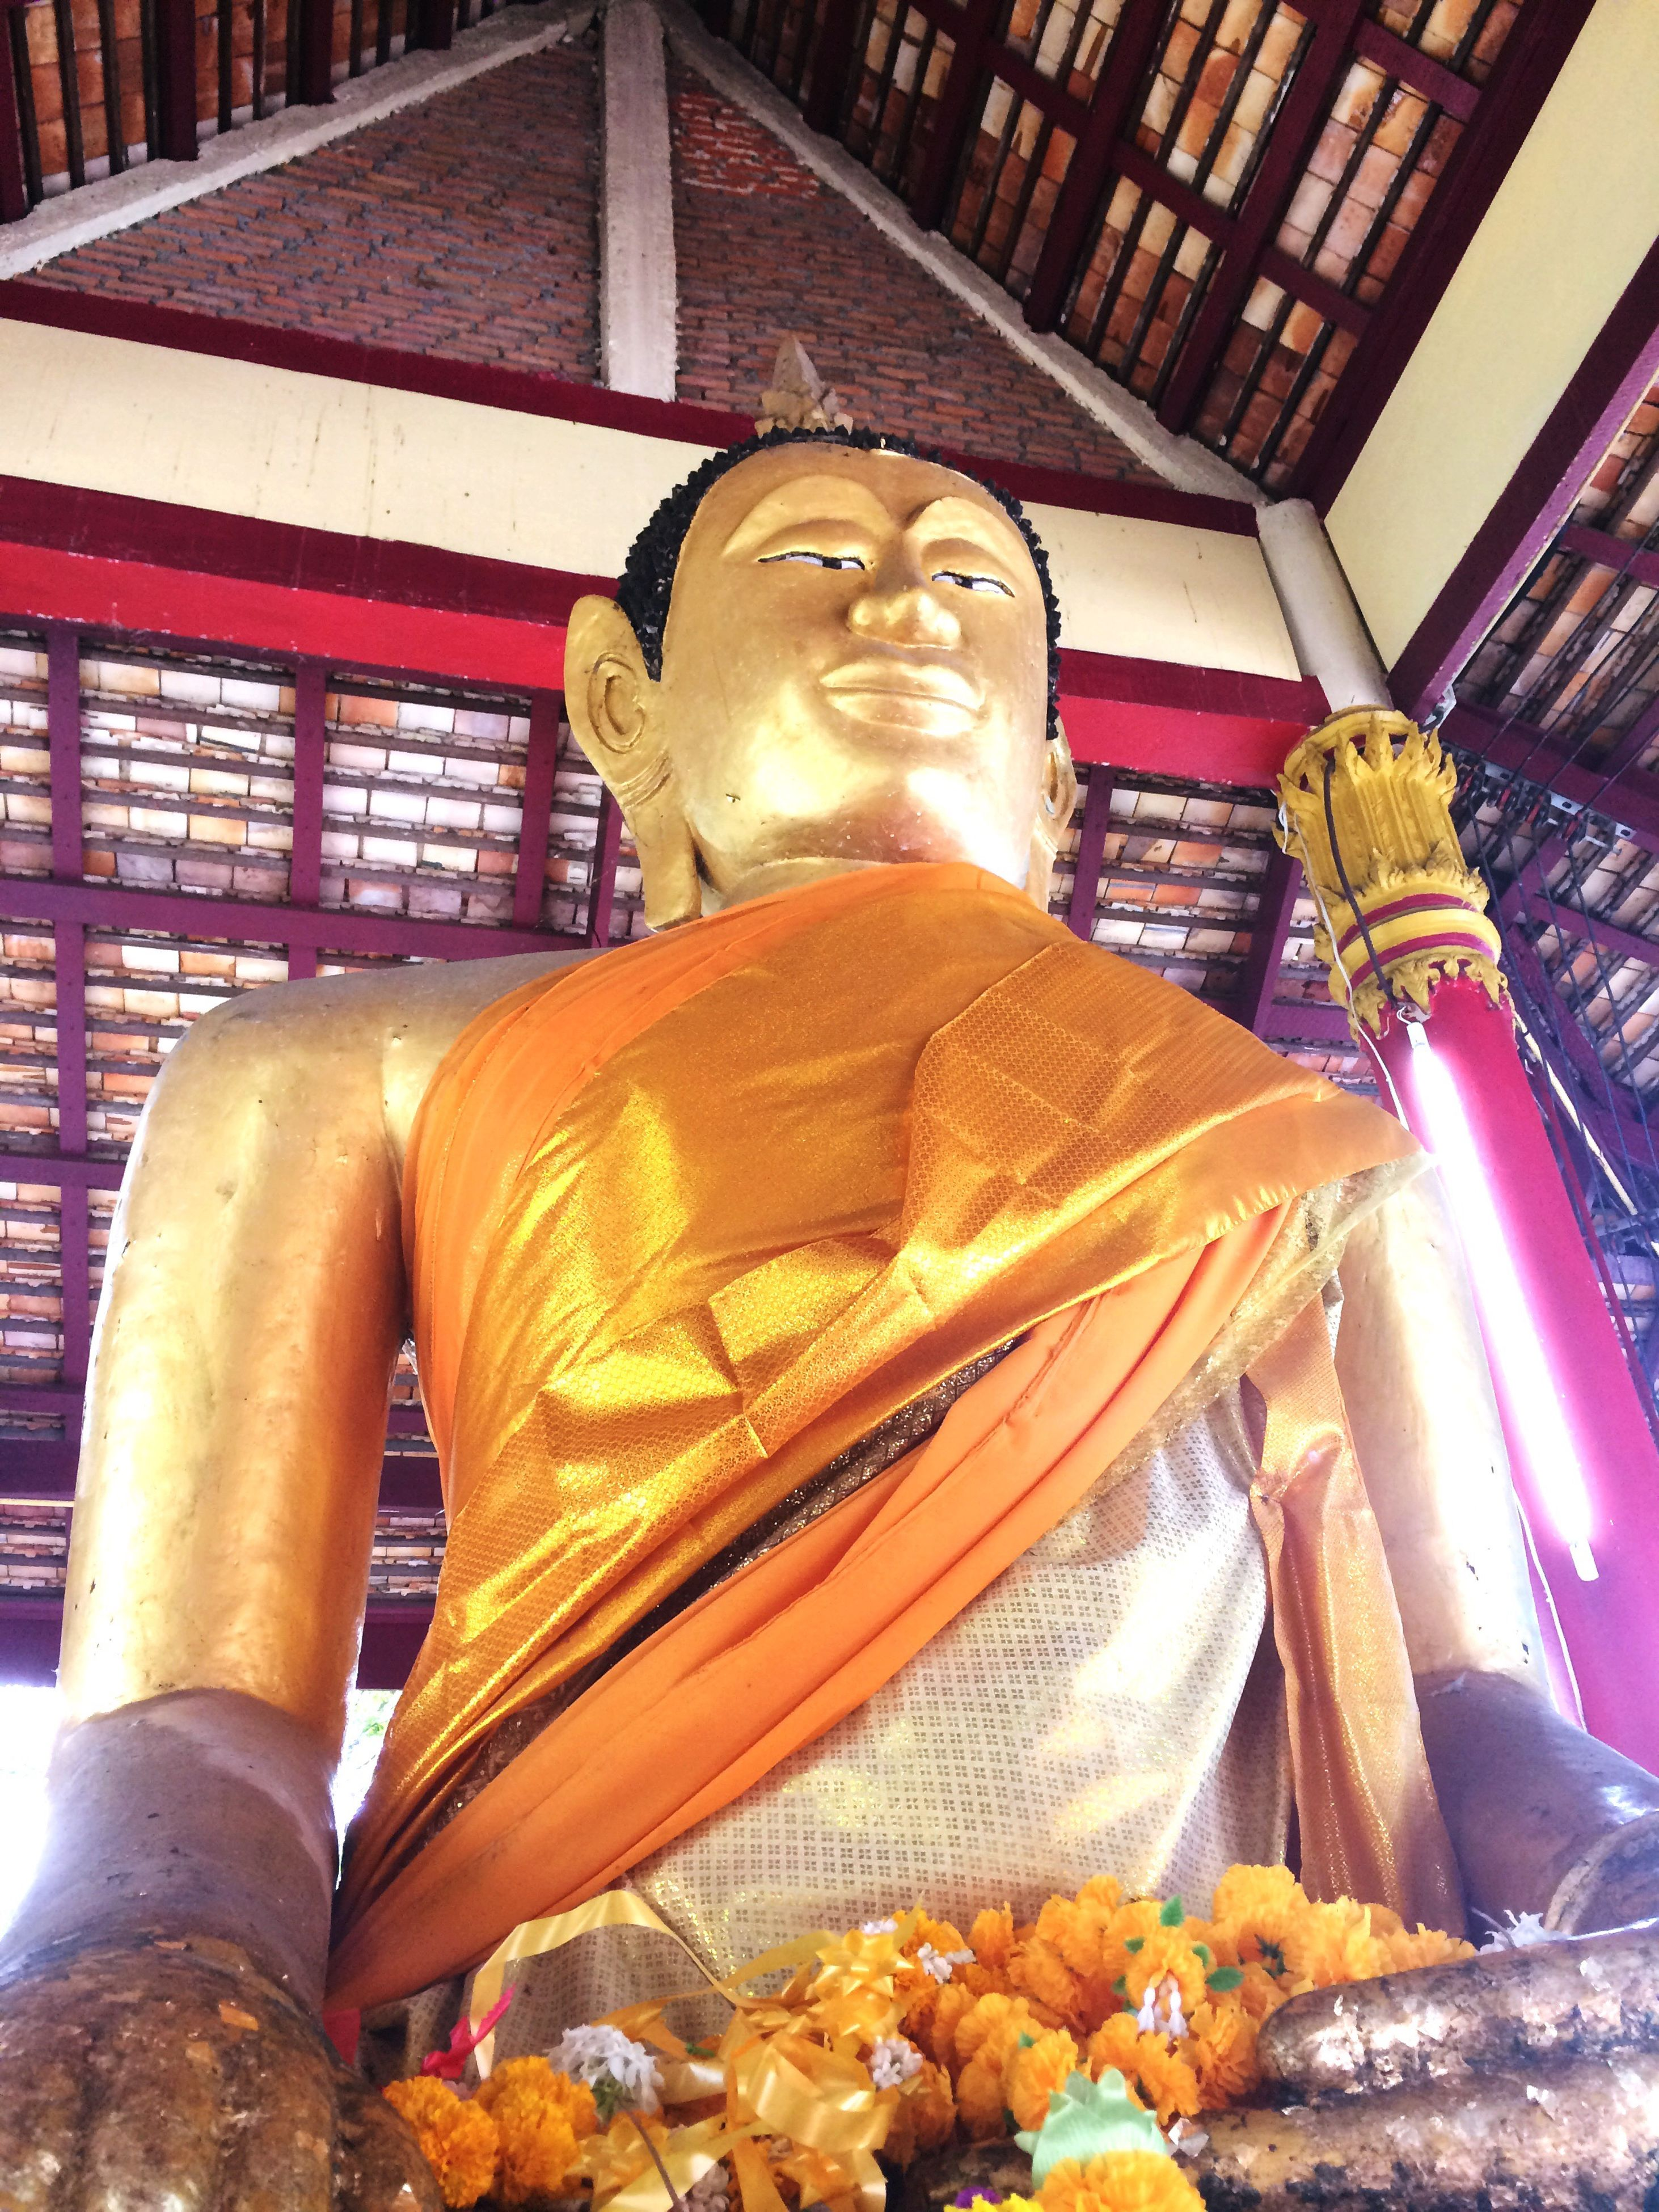 religion, human representation, statue, indoors, spirituality, place of worship, sculpture, gold colored, no people, idol, close-up, day